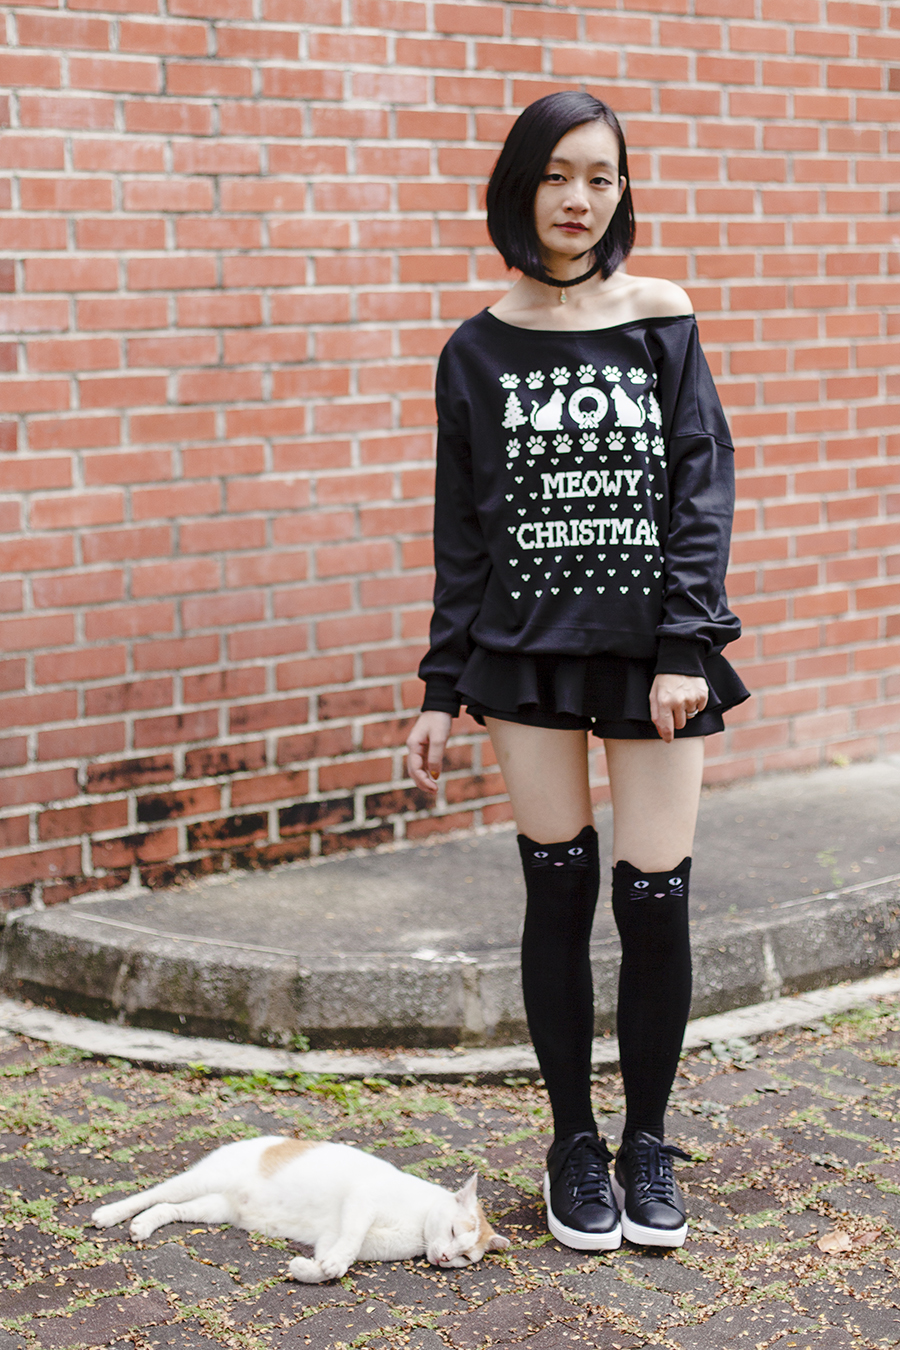 Meowy Christmas outfit: Black knee high cat socks, Dresslily Meowy Christmas sweater, Dresslily christmas tree lace choker necklace, Mango black leather sneakers.